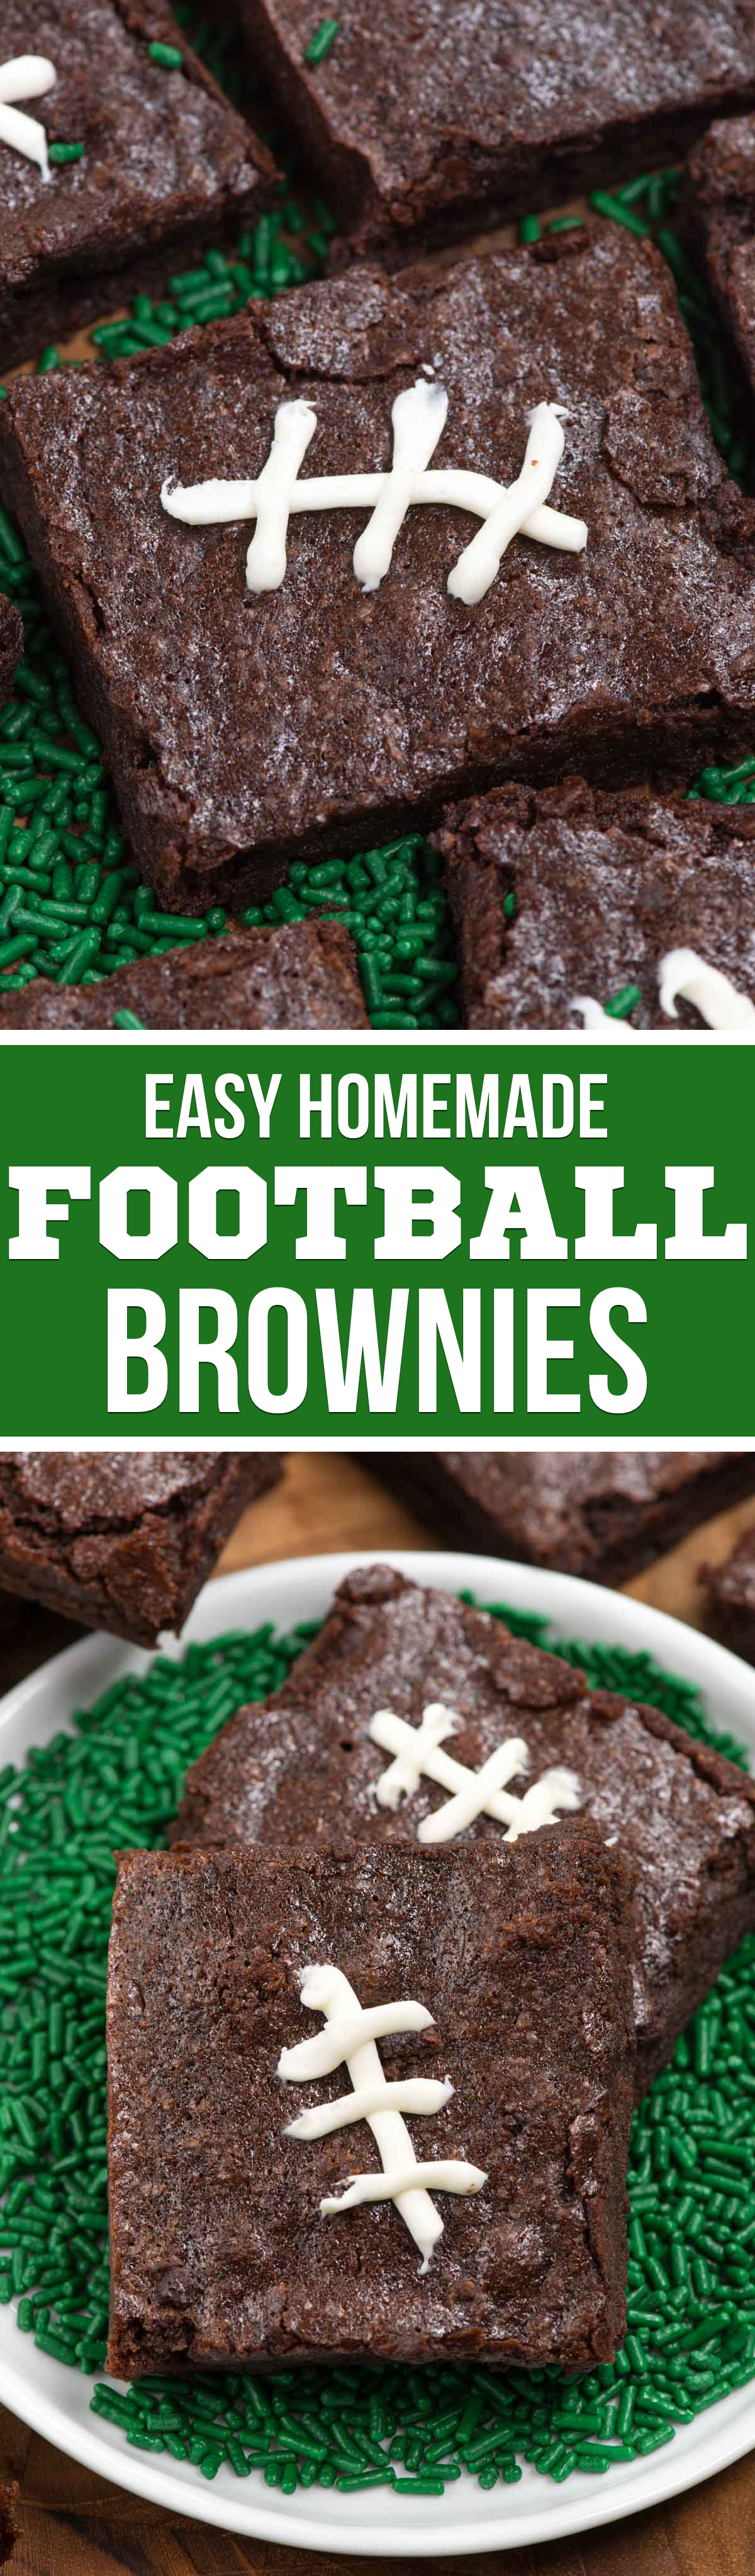 Homemade Football Brownies are the easiest way to celebrate the Super Bowl! Use homemade brownie mix and easy frosting to make a delicious football treat.